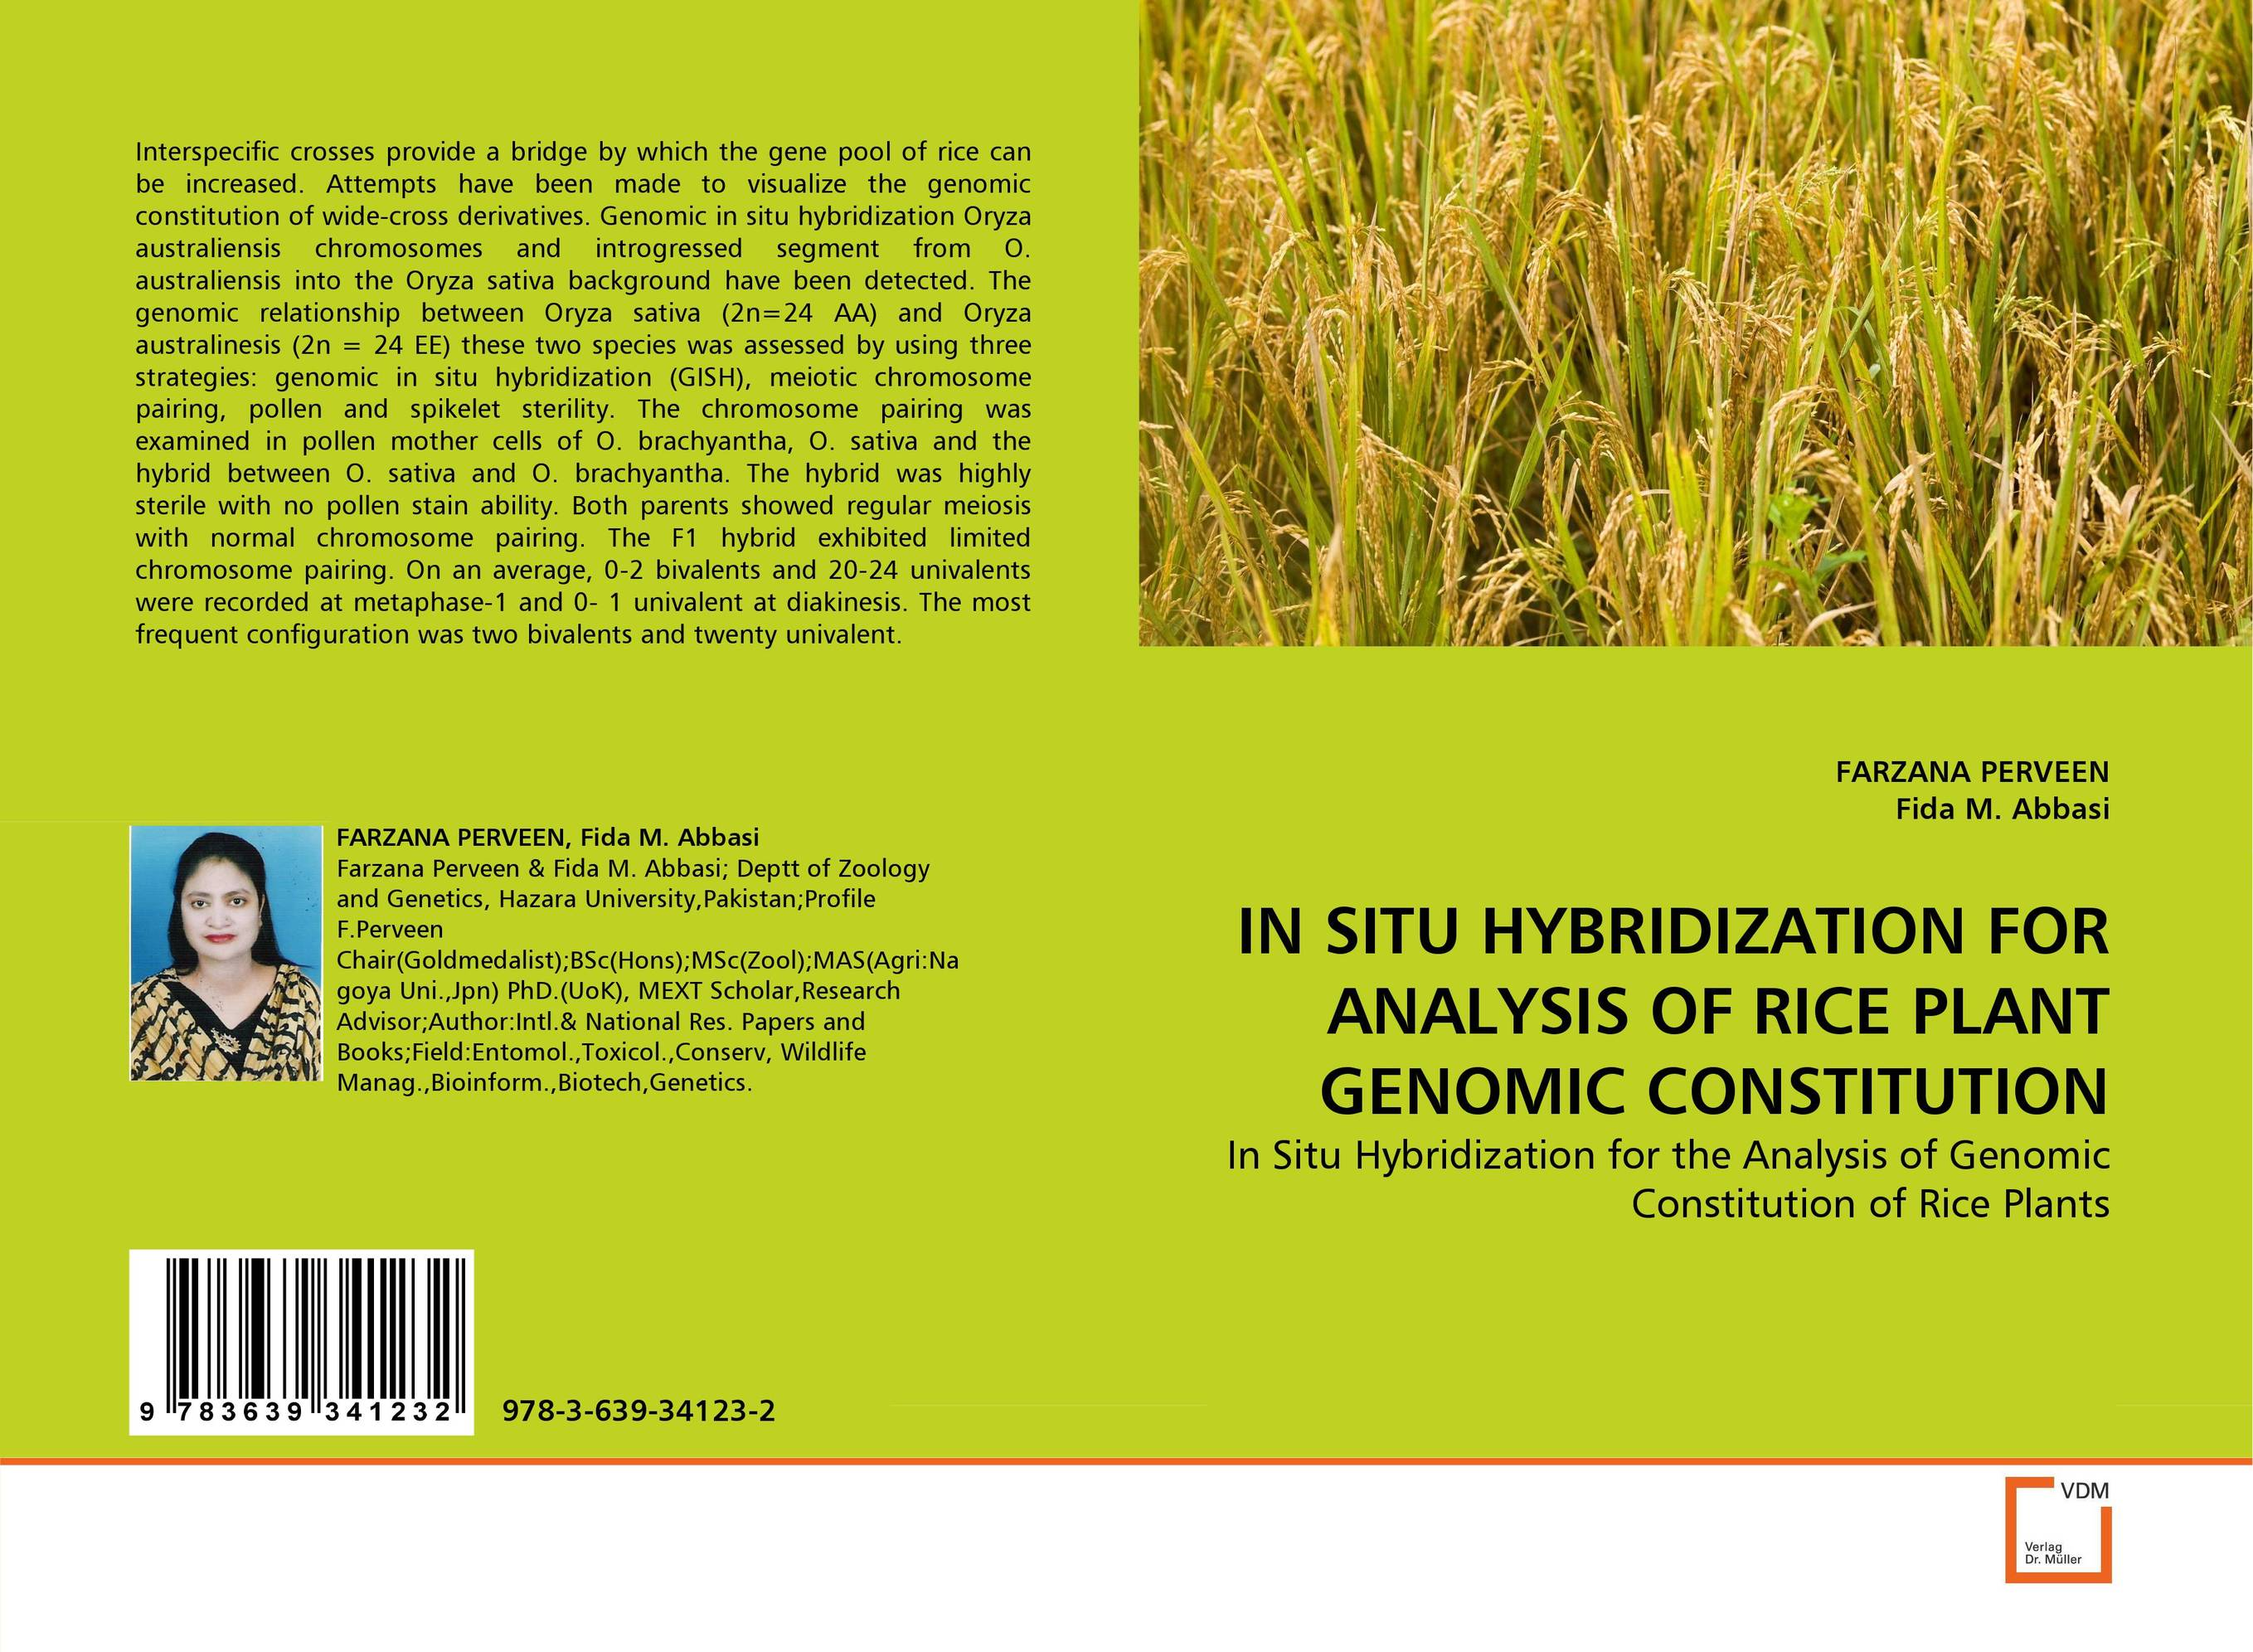 IN SITU HYBRIDIZATION FOR ANALYSIS OF RICE PLANT GENOMIC CONSTITUTION парка chromosome chromosome ch036emndg39